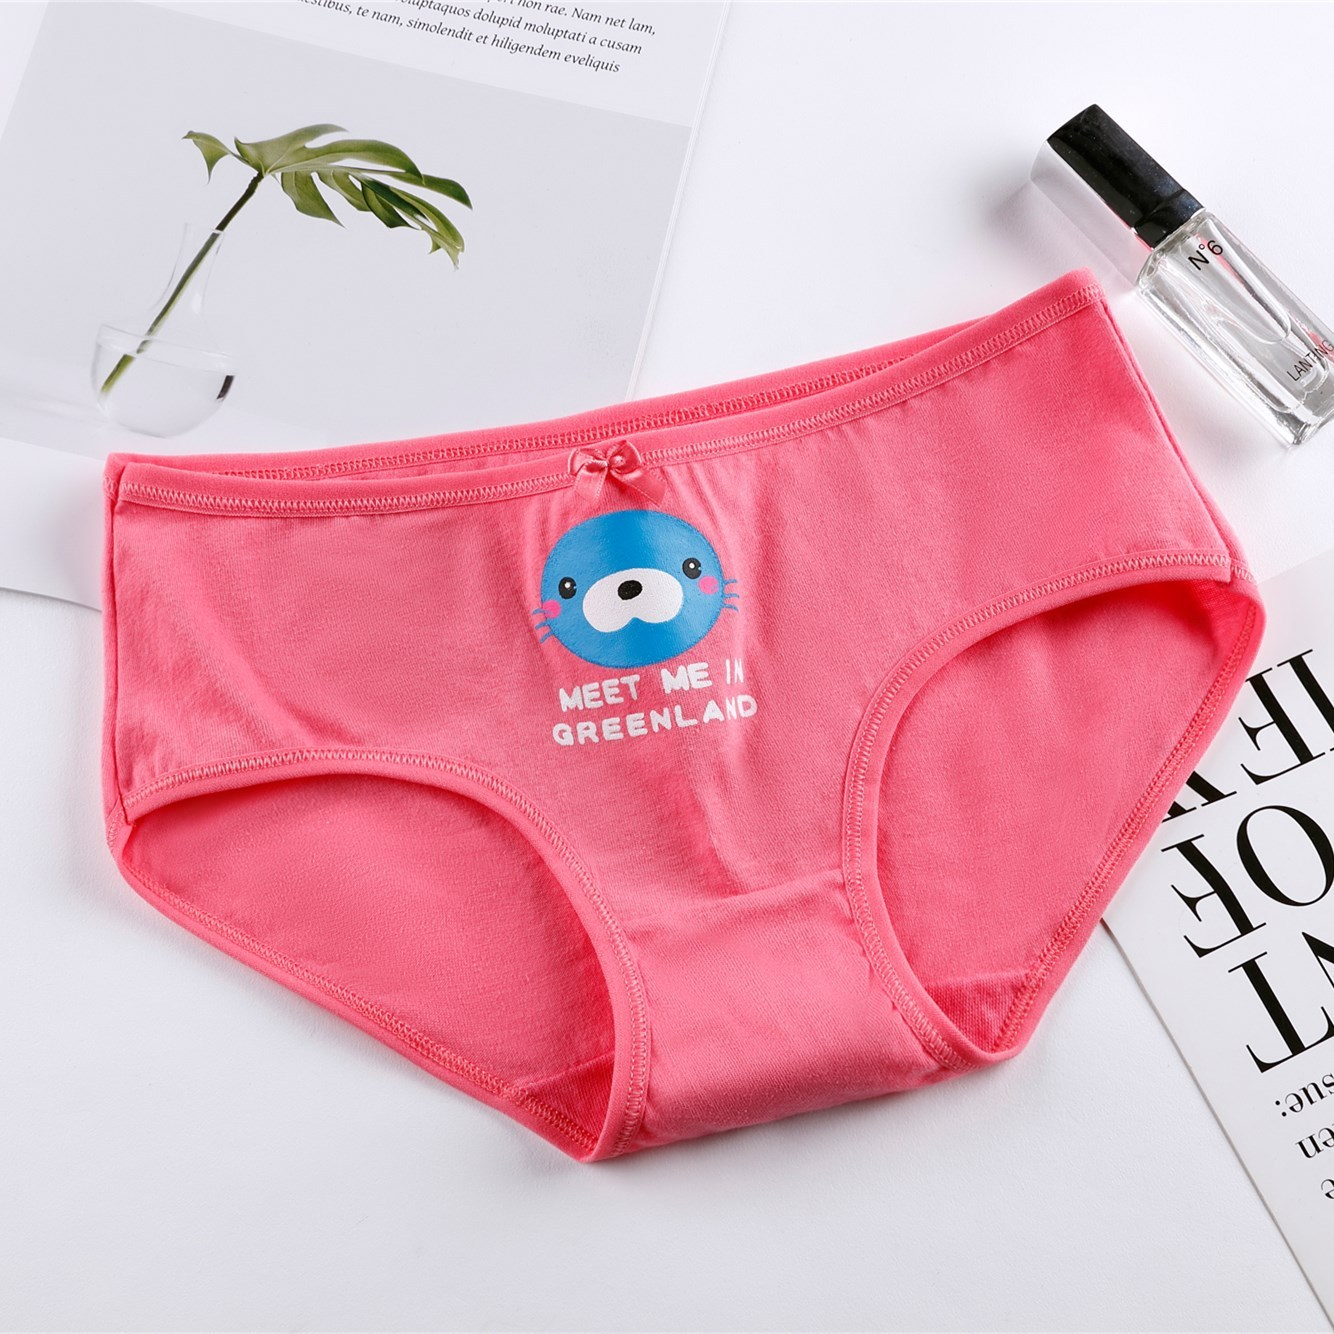 Women's panties cotton gril briefs print underwear sexy lingerie stripe underwear plus size underpants female panty pink panties